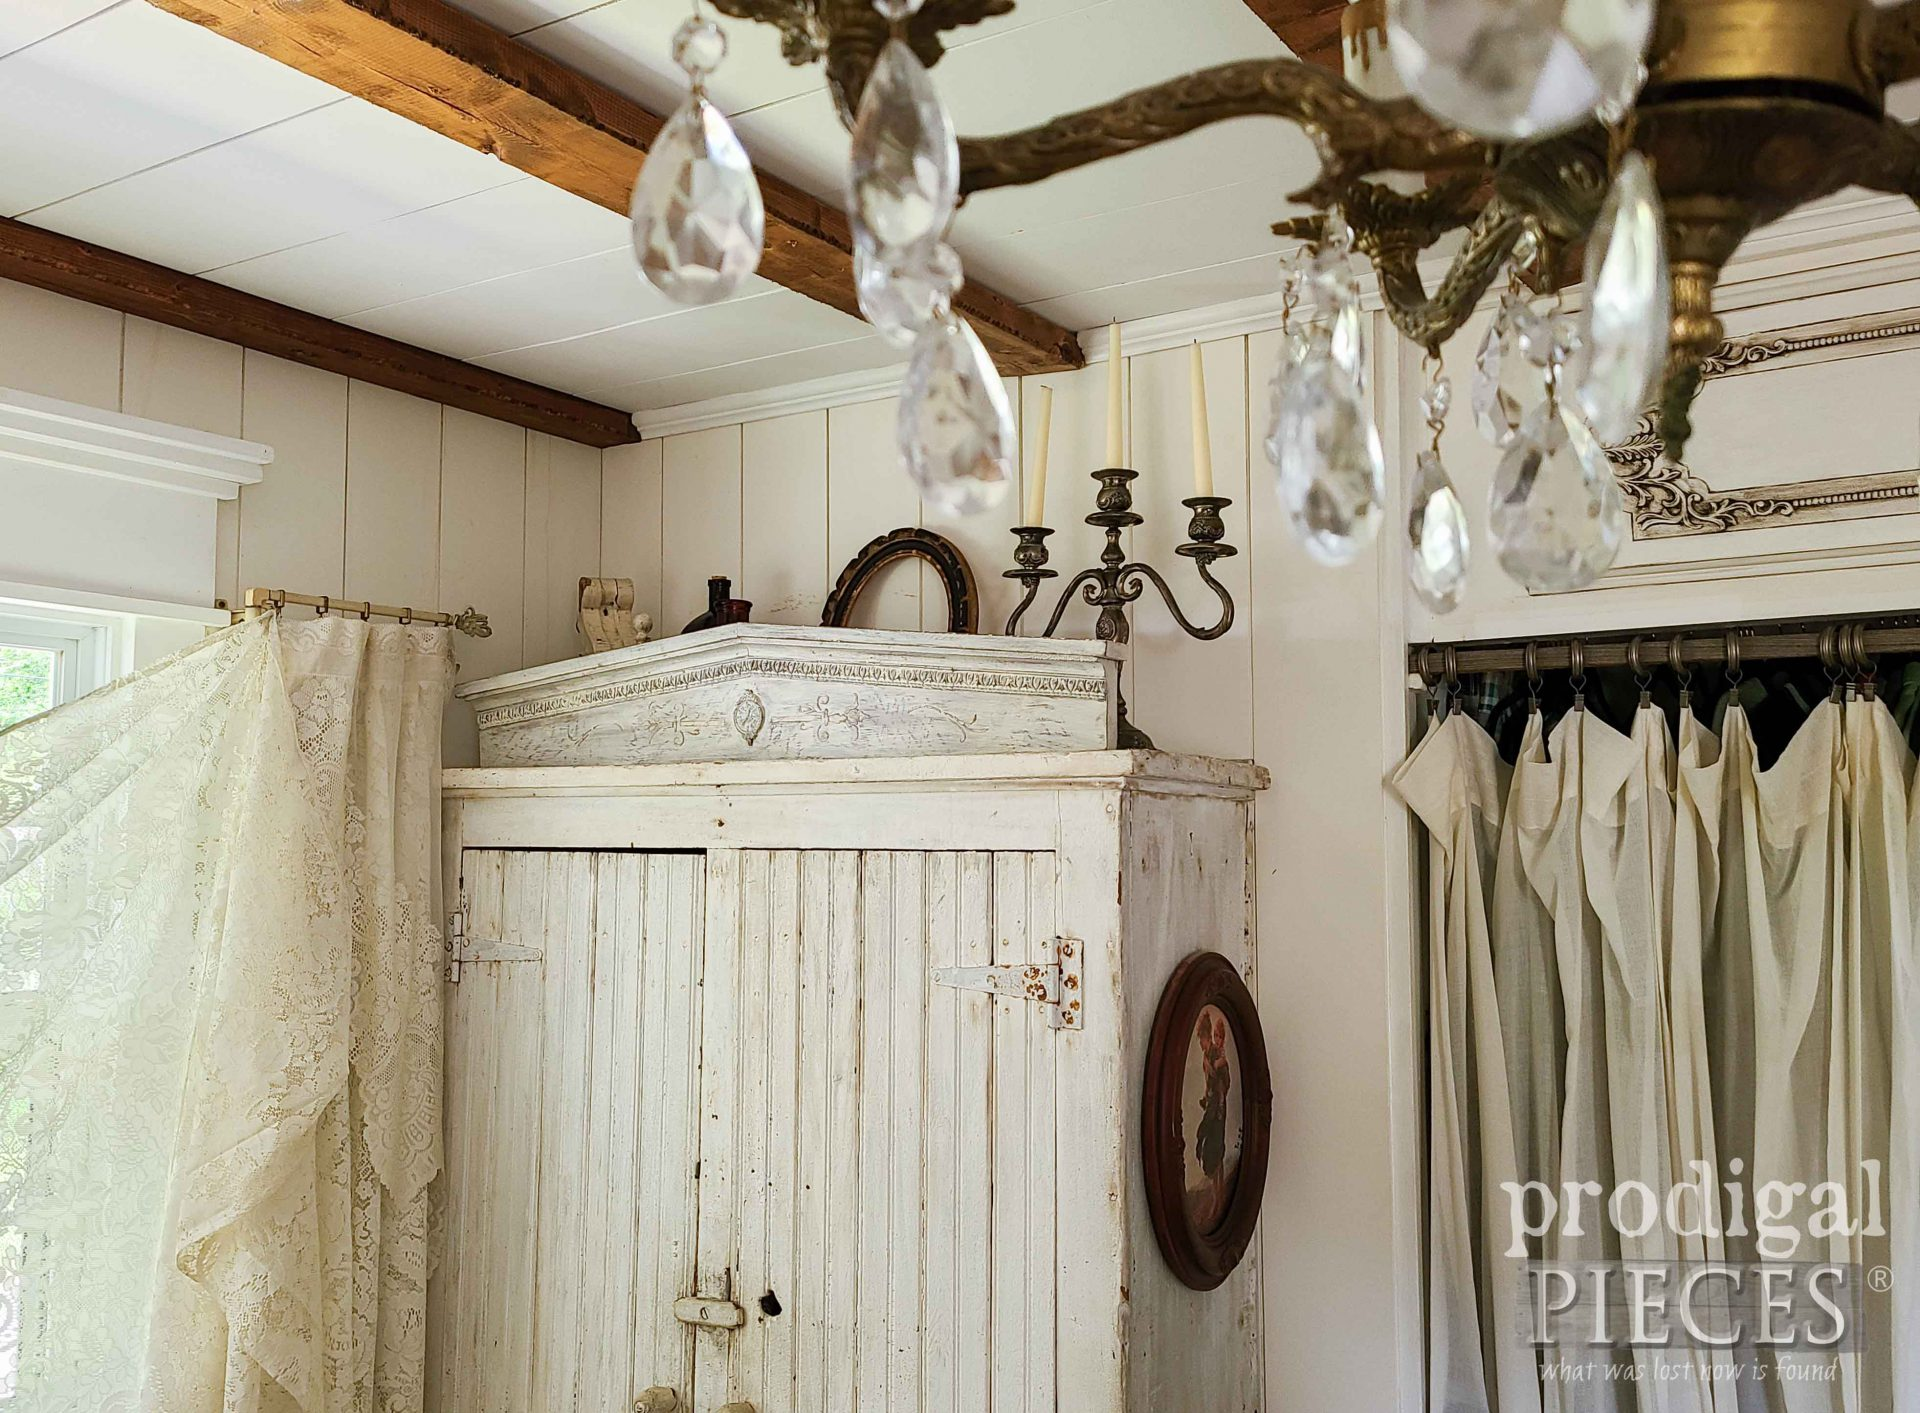 Crystal Chandelier in Farmhouse Bedroom with Pediment | prodigalpieces.com #prodigalpieces #farmhouse #bedroom